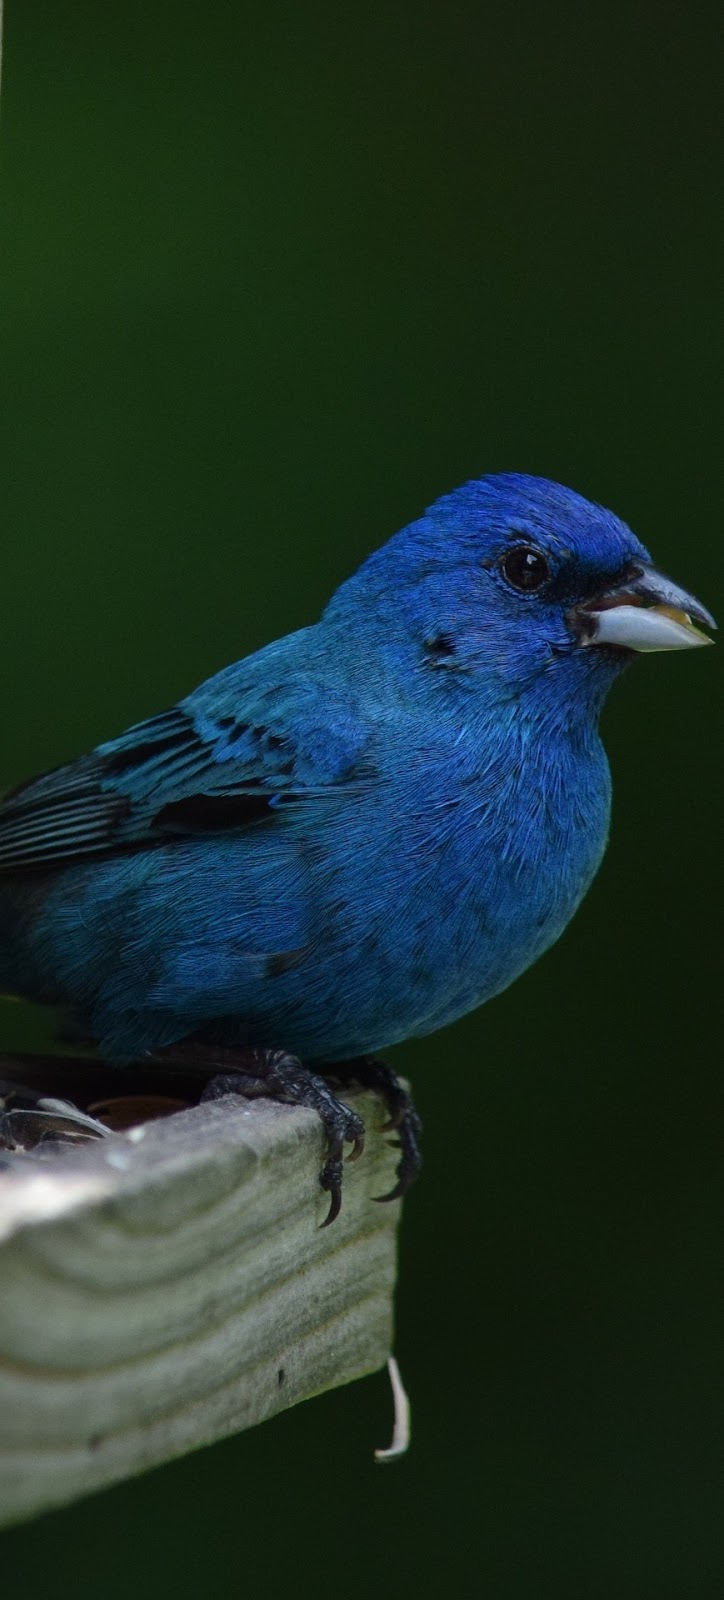 Picture of an Indigo bunting.